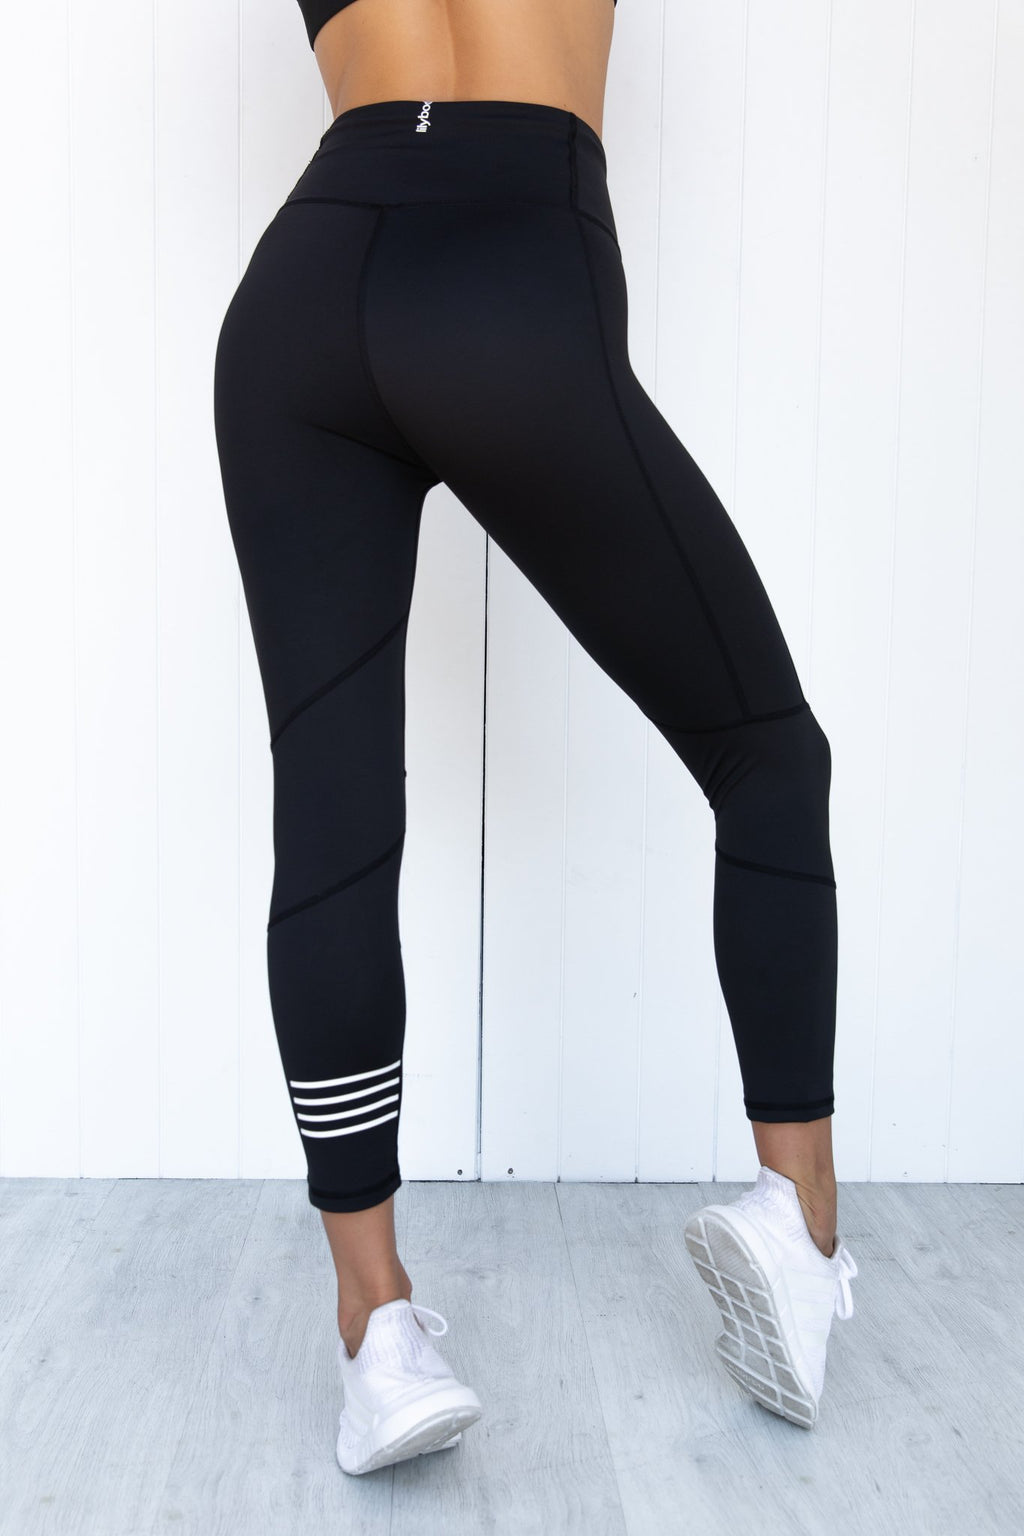 Juliet Leggings - Black